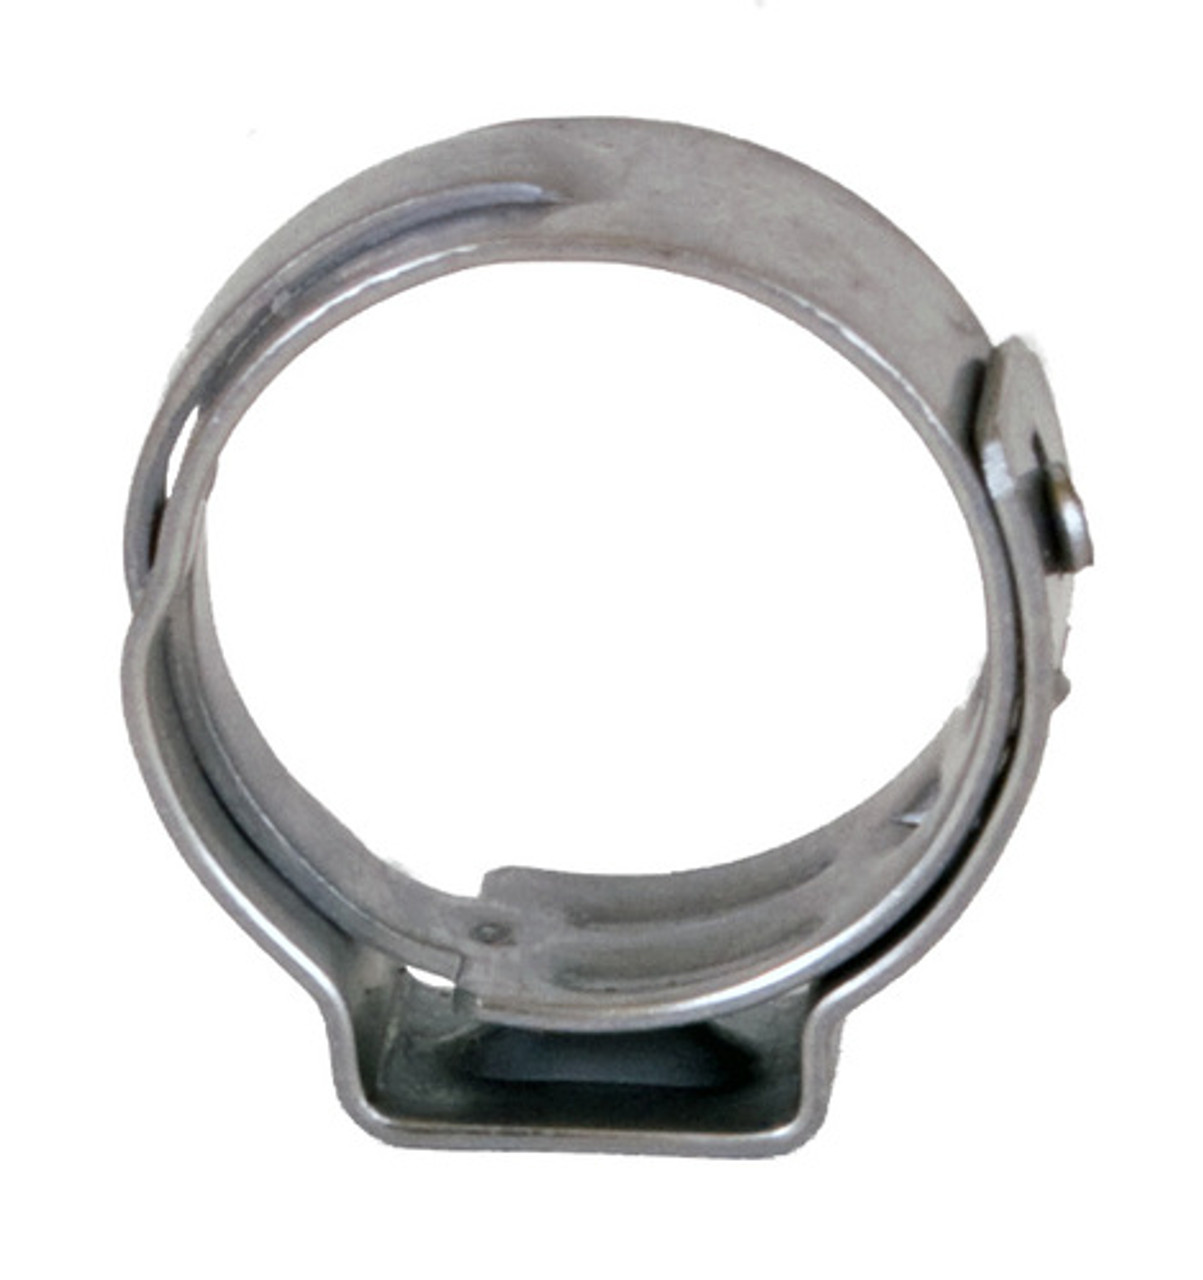 Oetiker Clamps - Choose Your Size